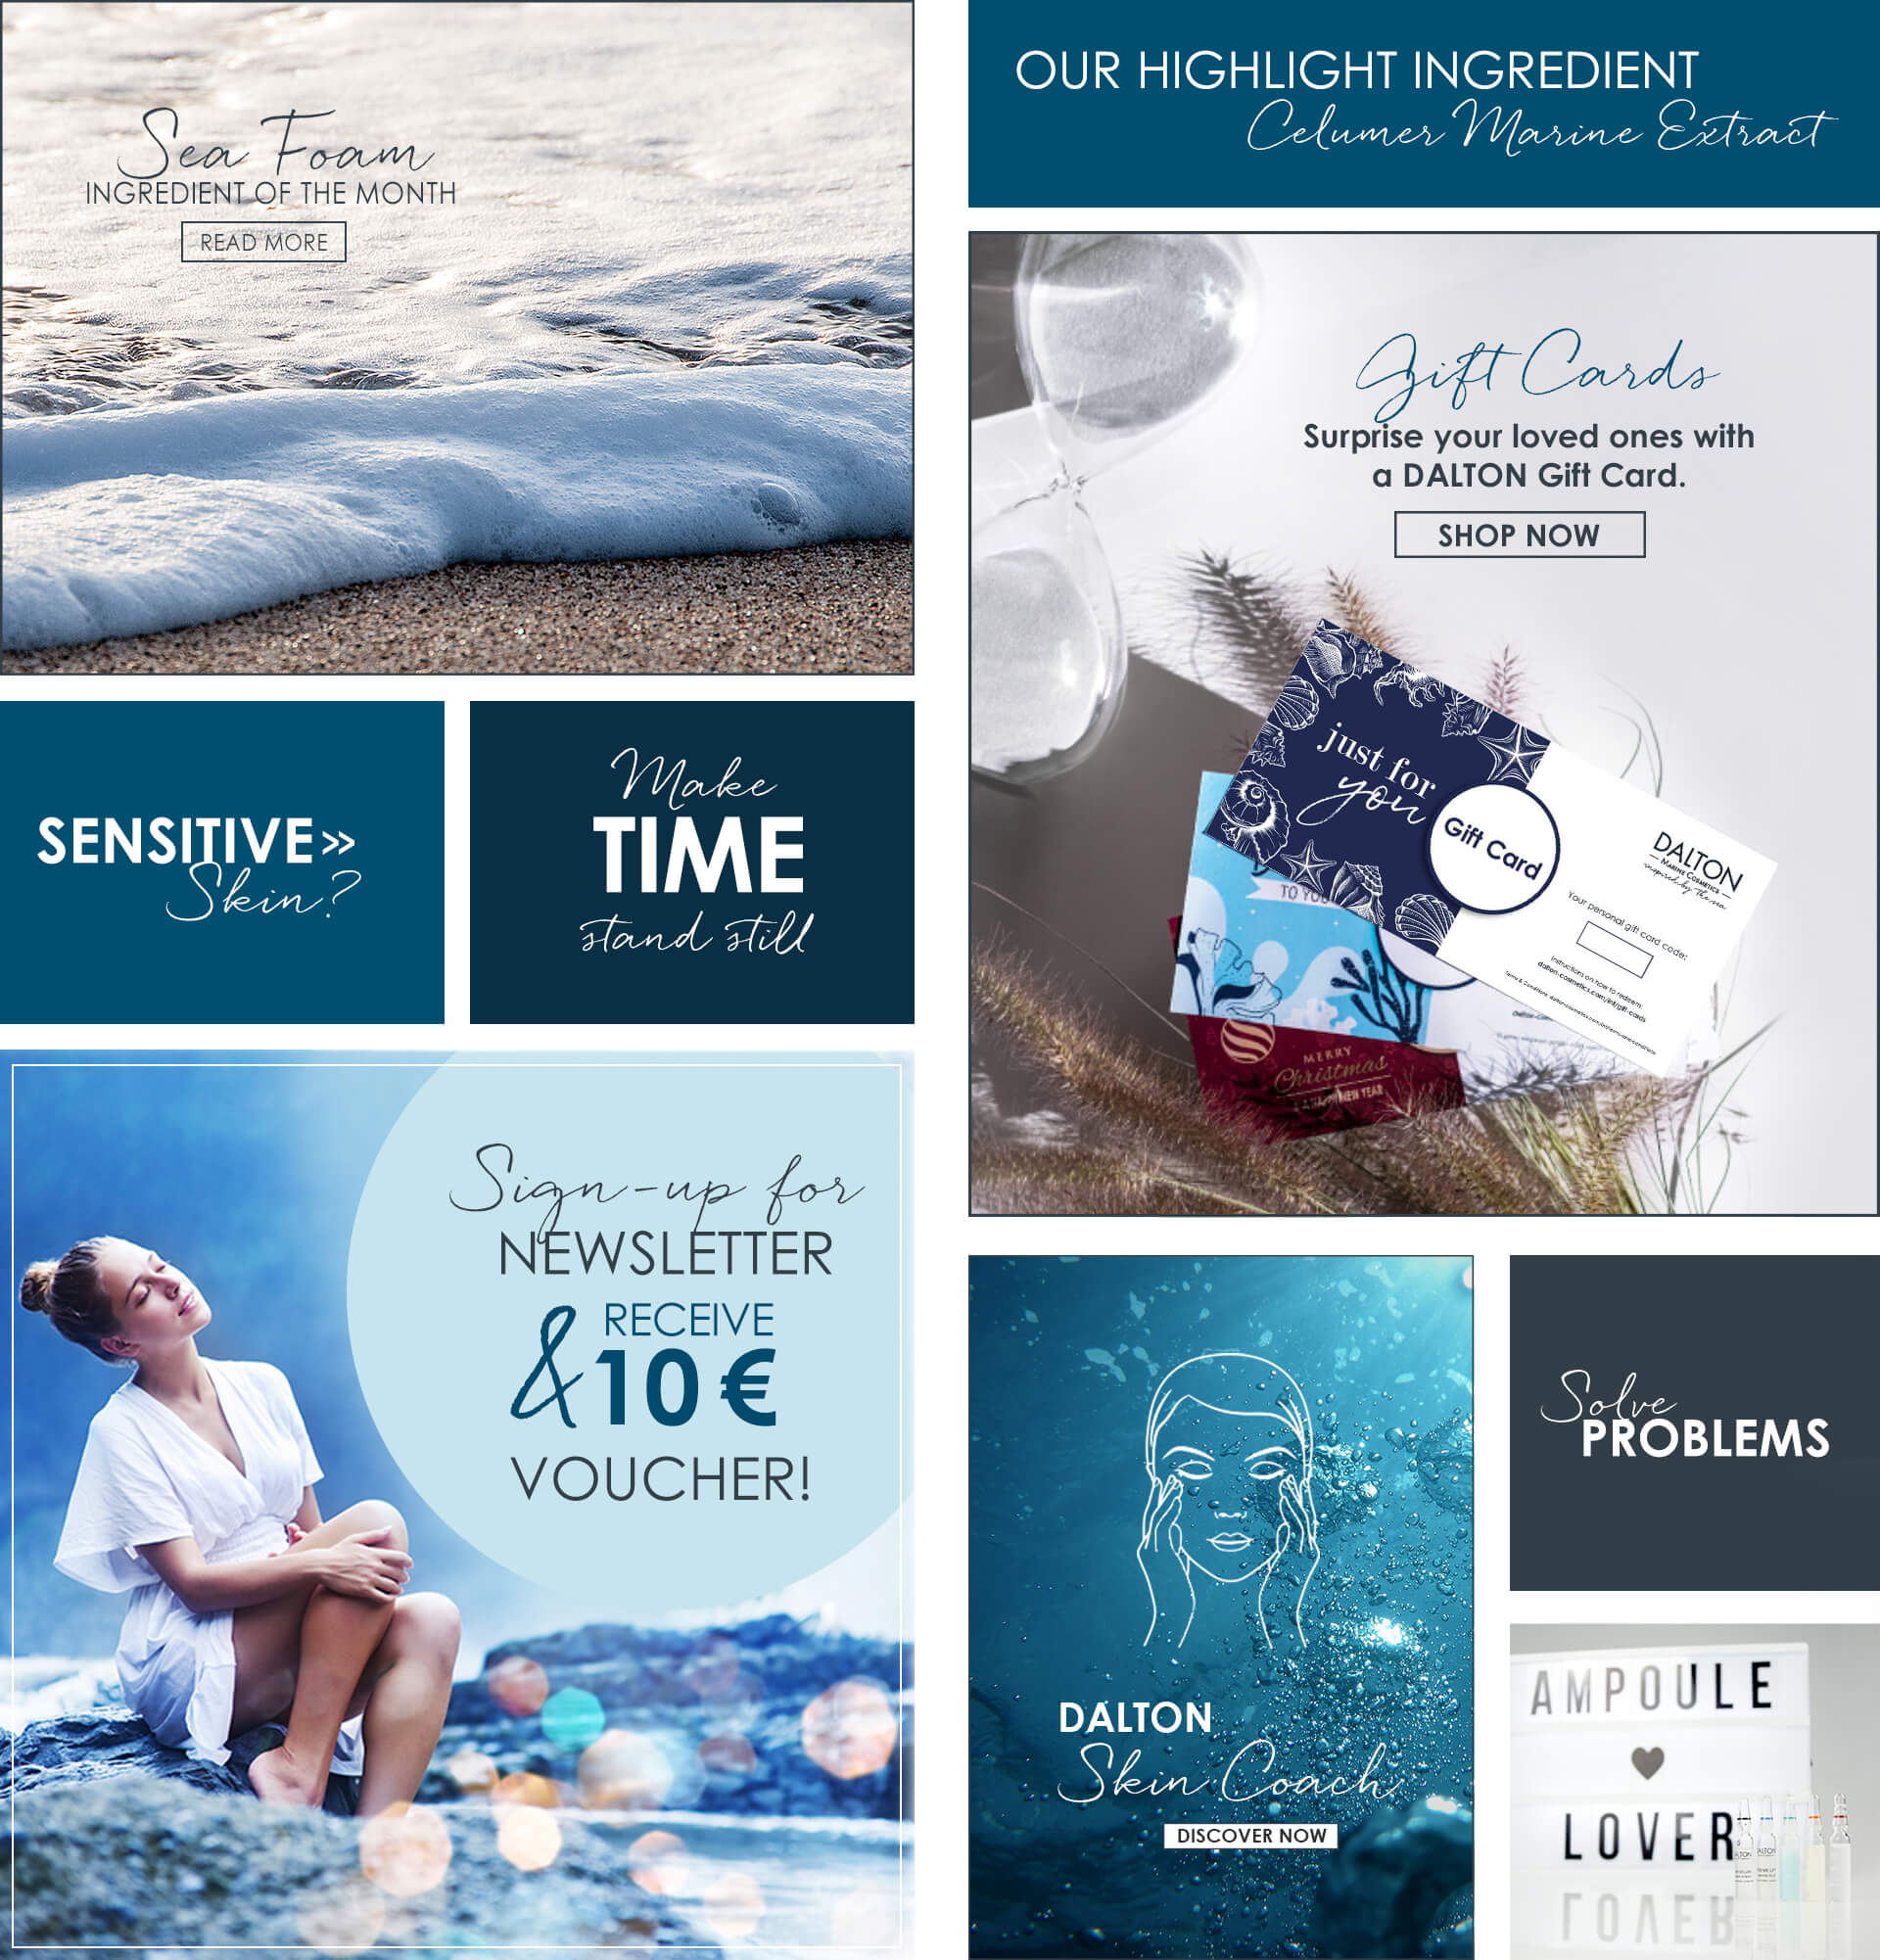 Dalton Notice Board